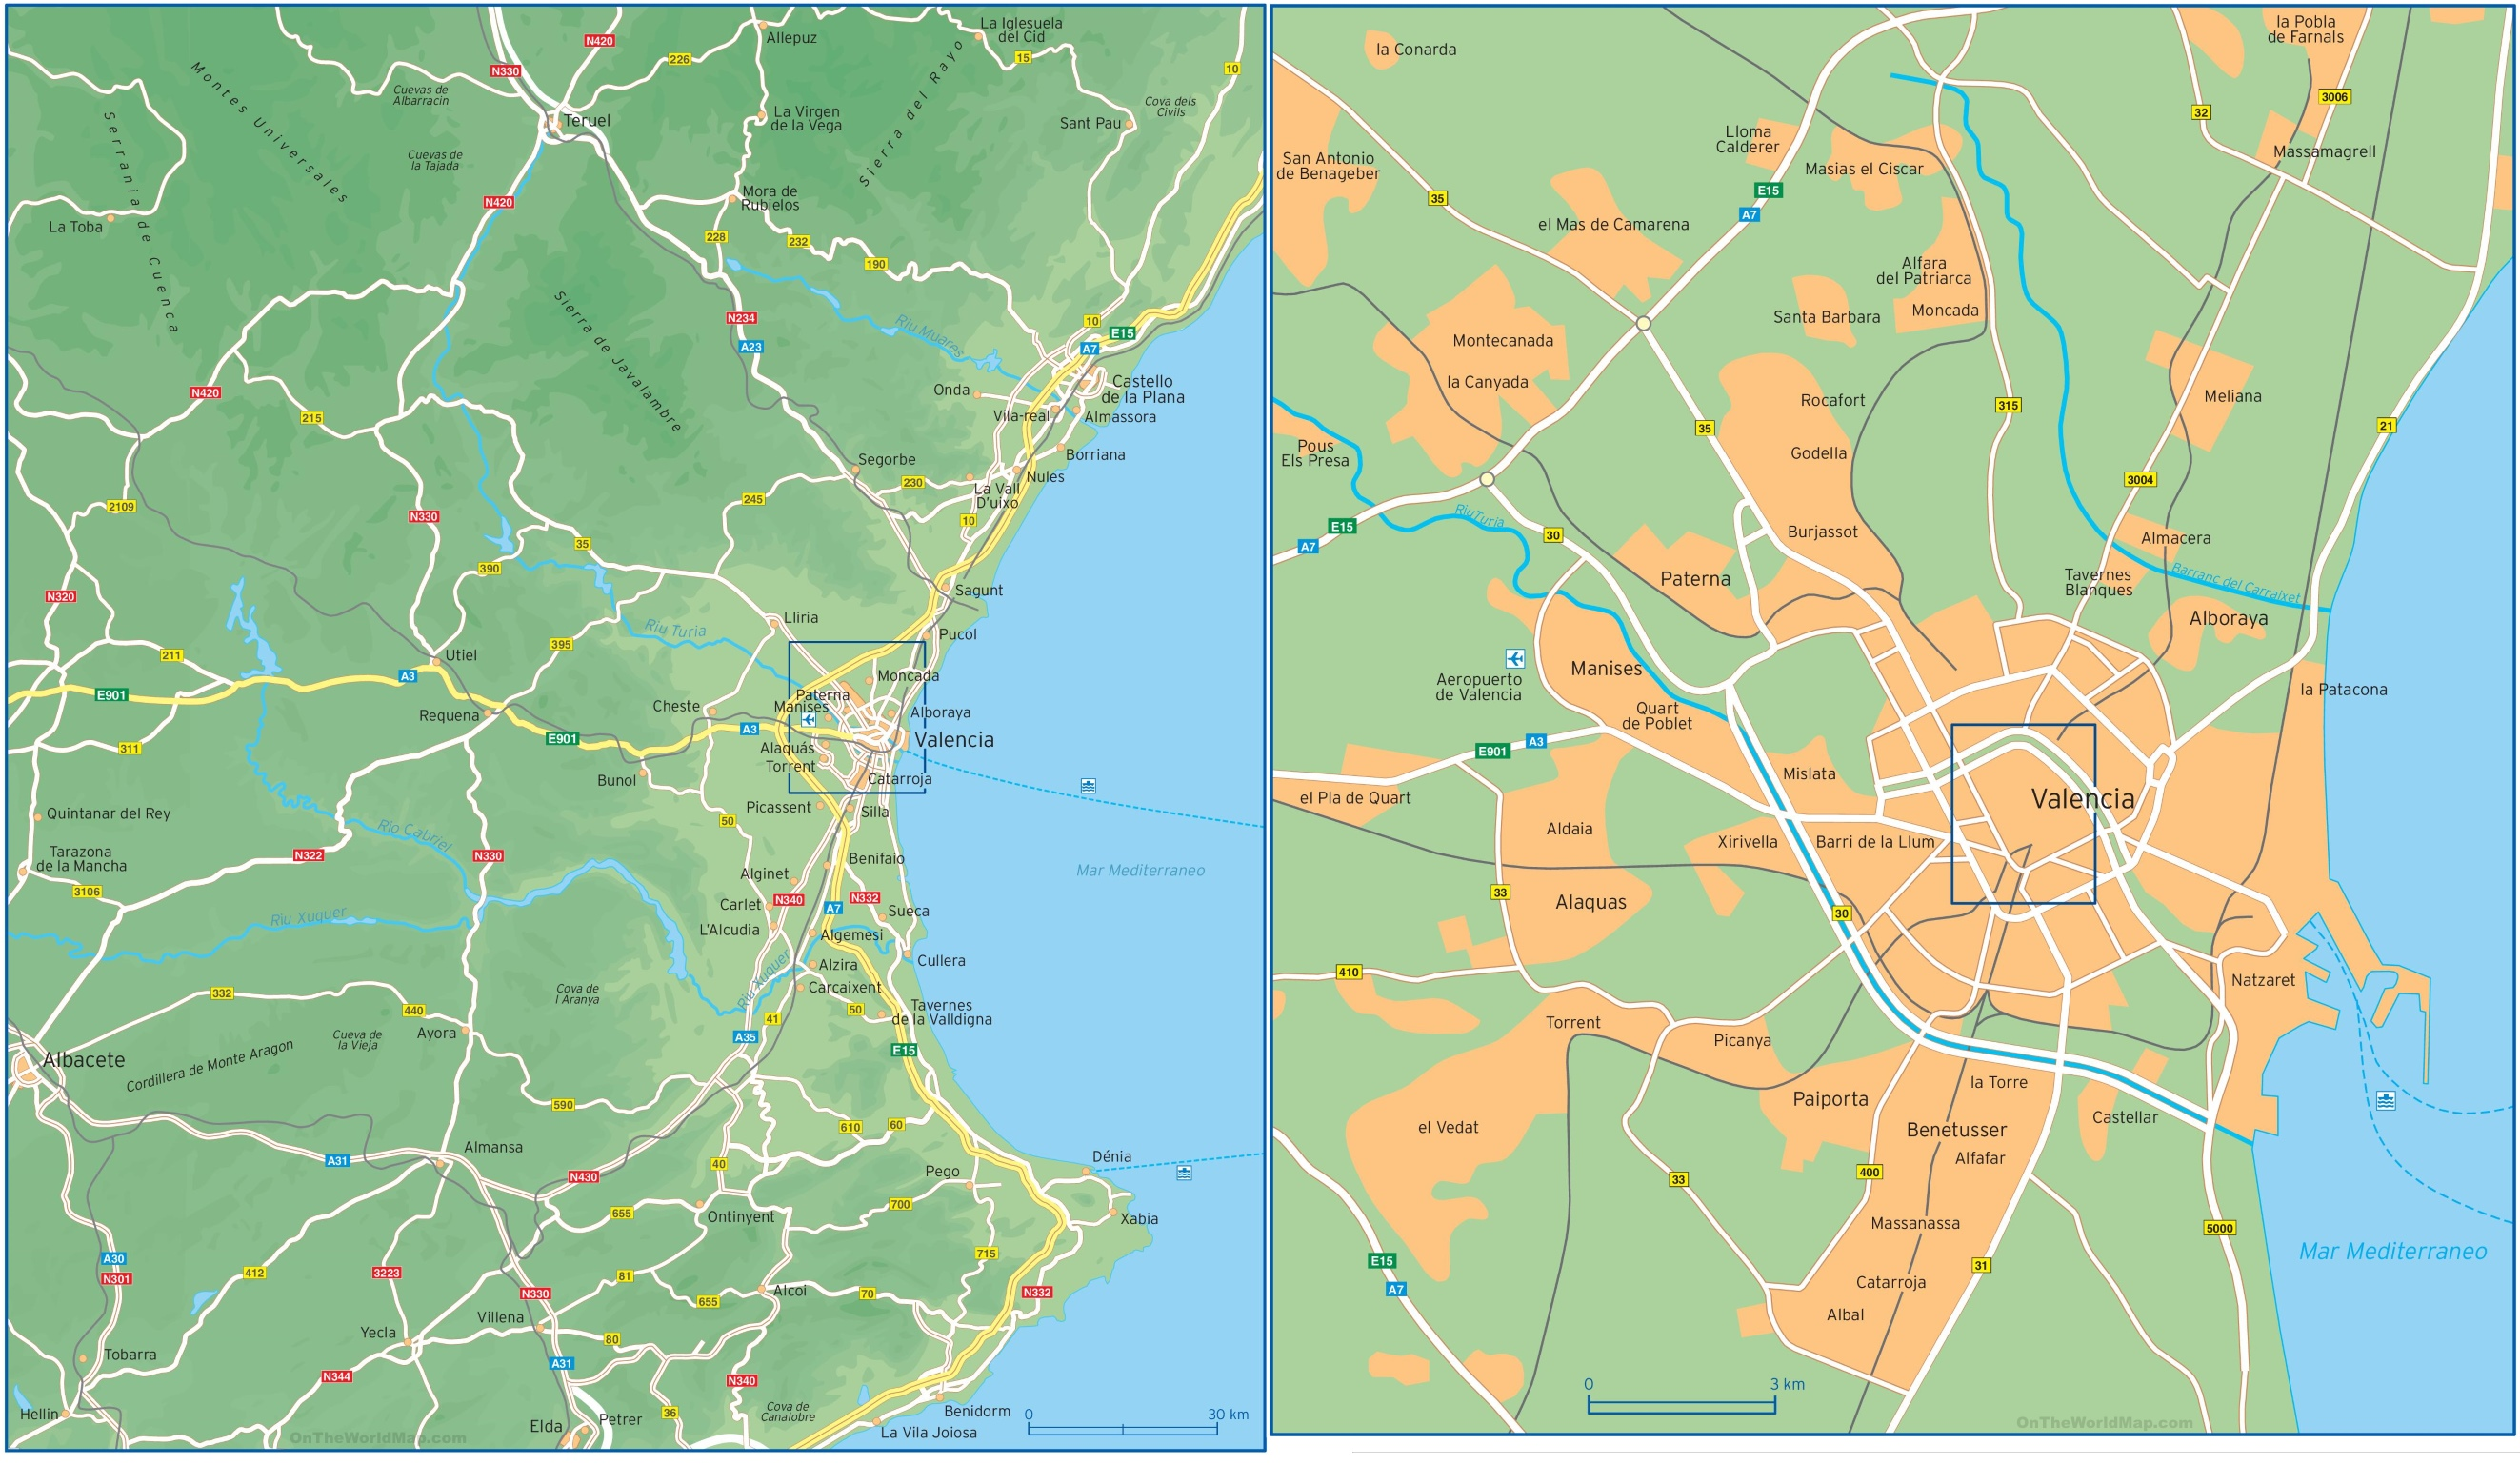 Map of surroundings of Valencia